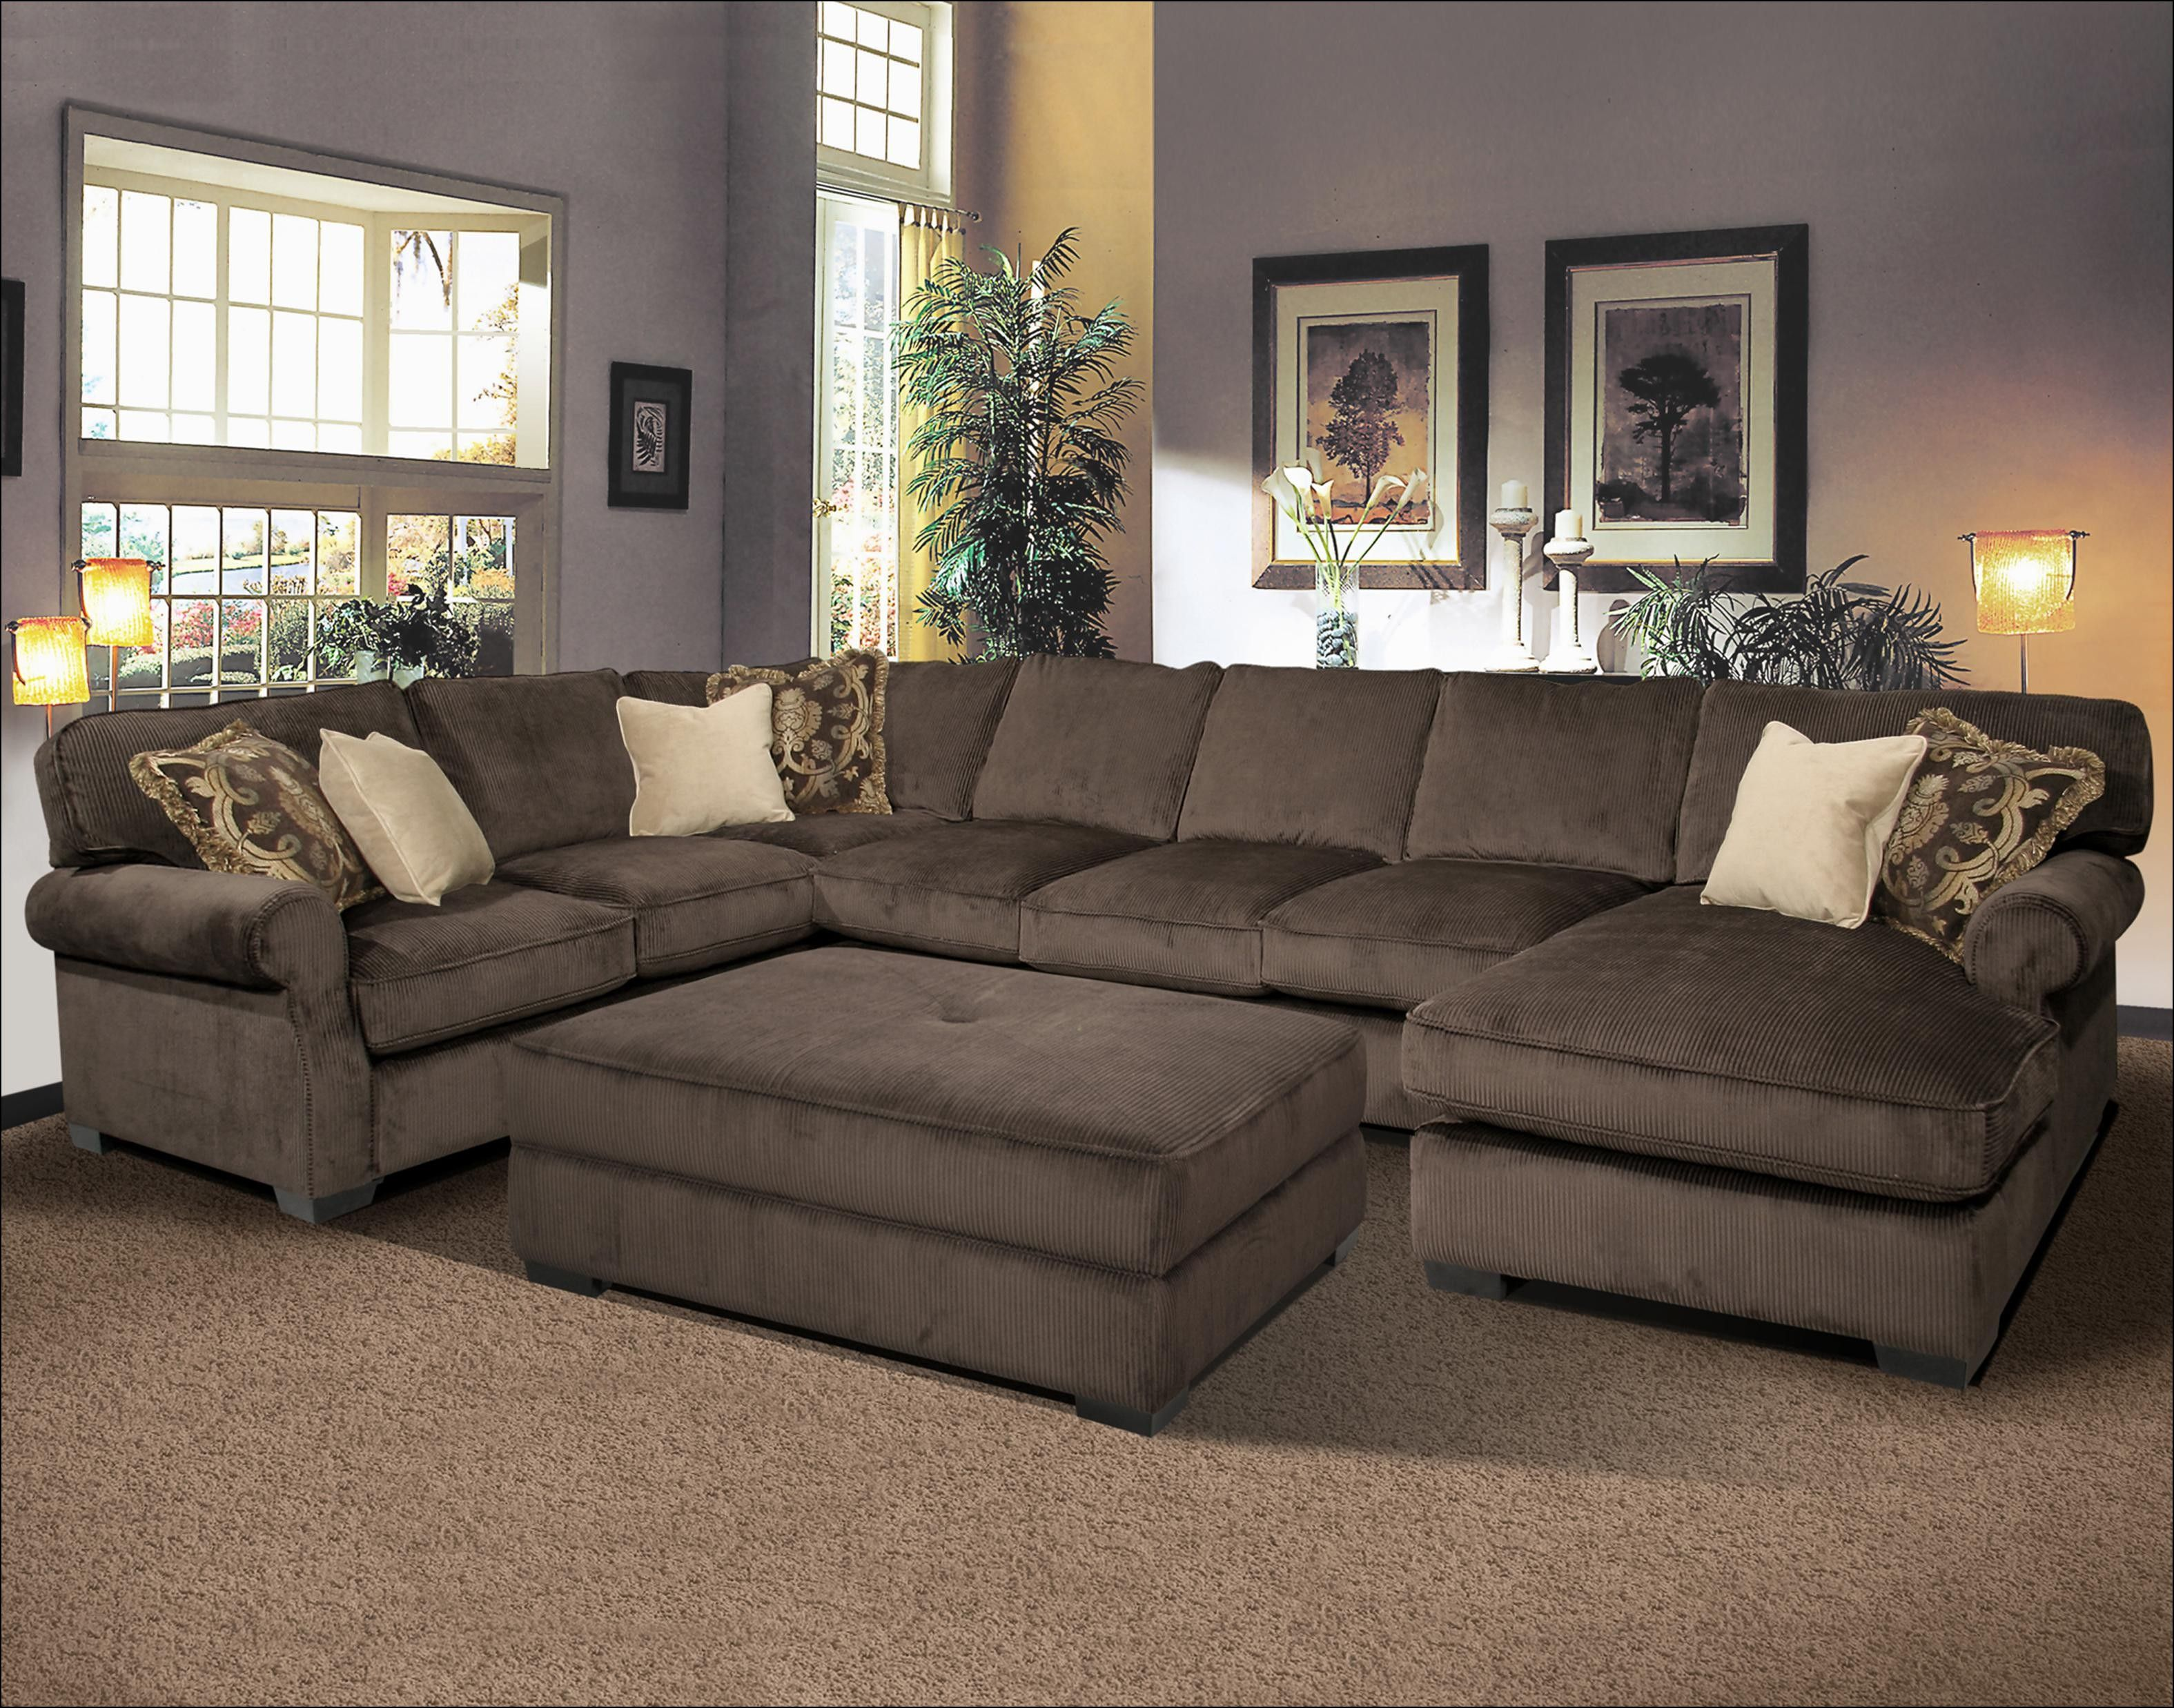 Big Comfortable Couches Home Home Furnishings Sectional Sofa With Chaise